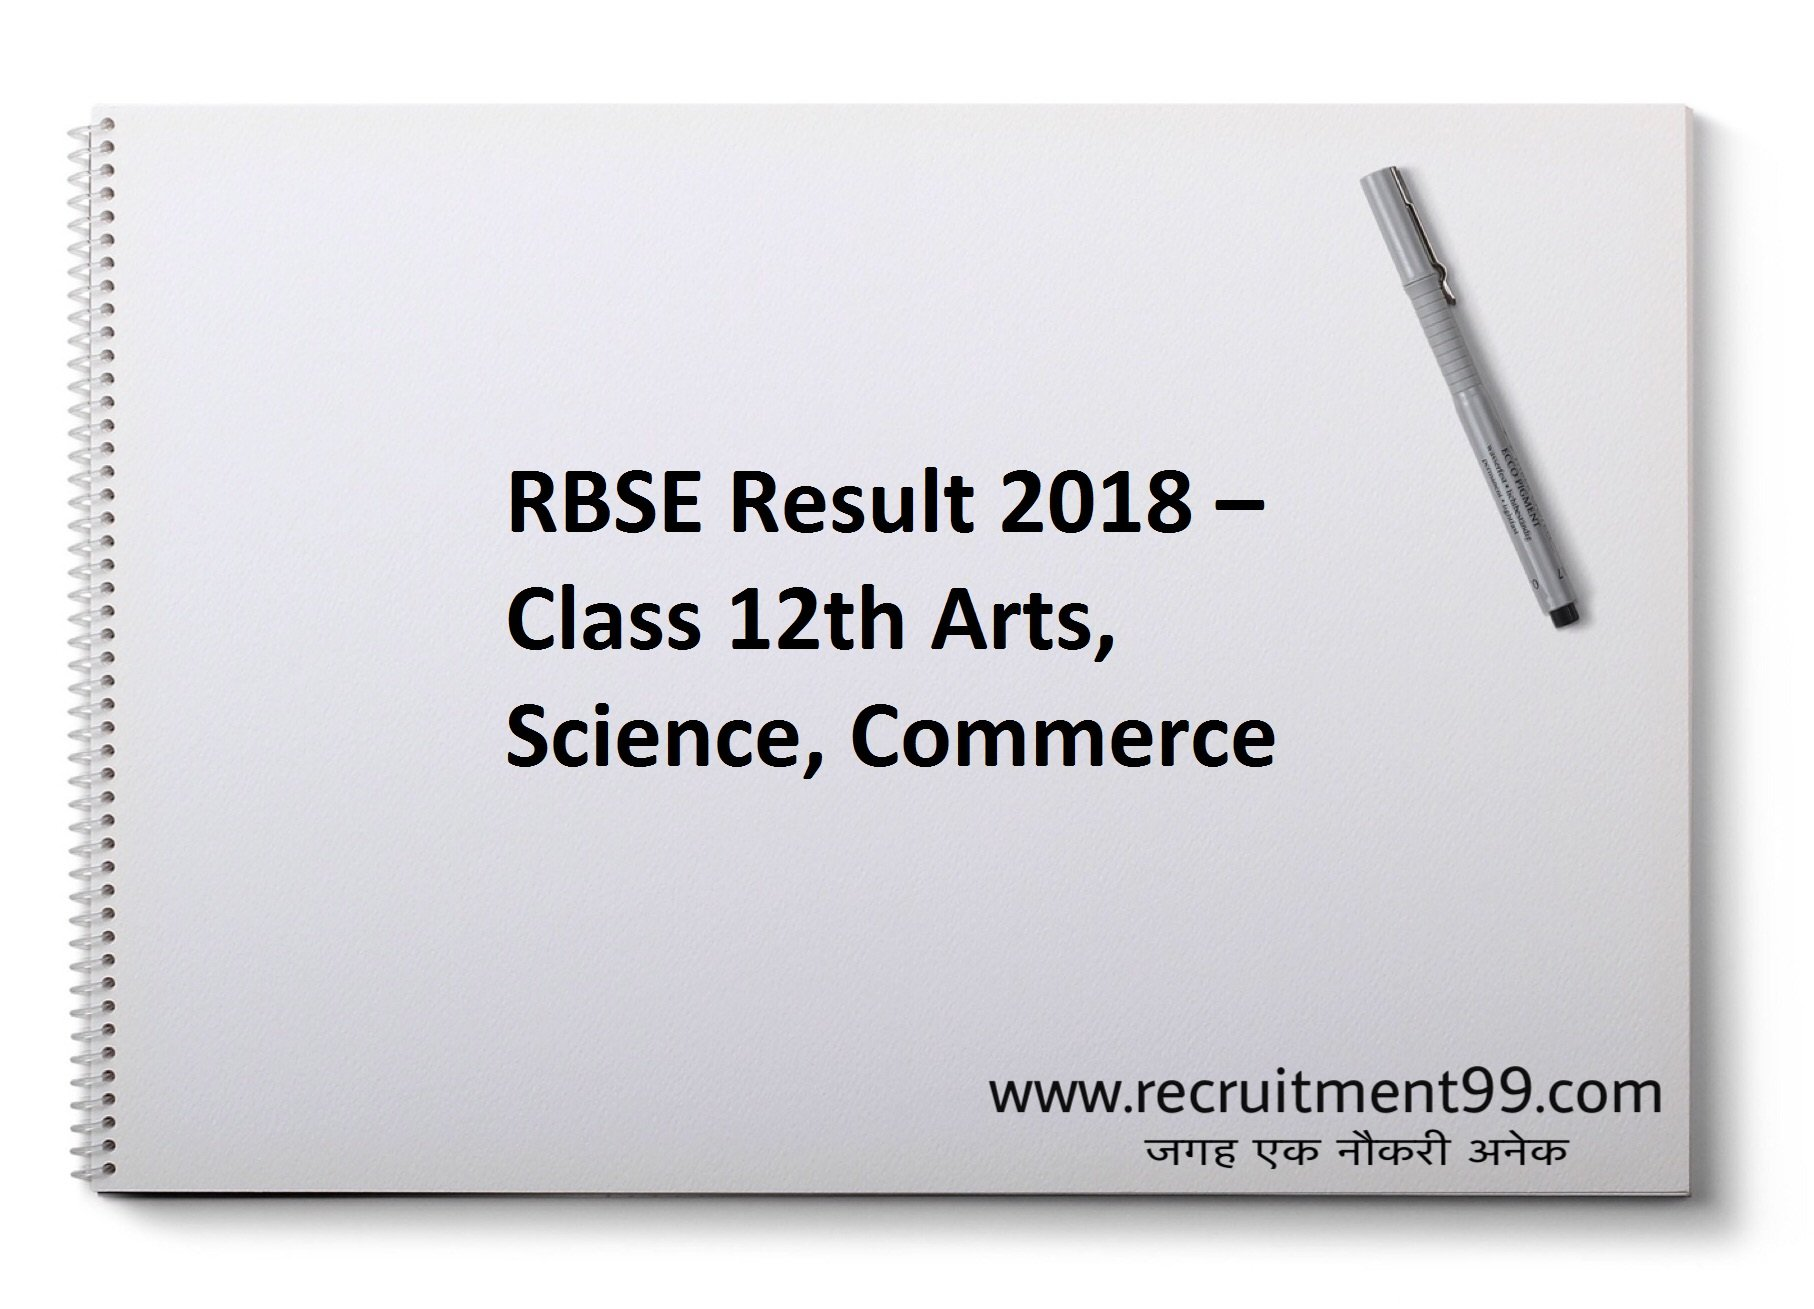 Rajasthan BSE Class 12th Arts Board Roll no Name wise Admit Card Result 2018